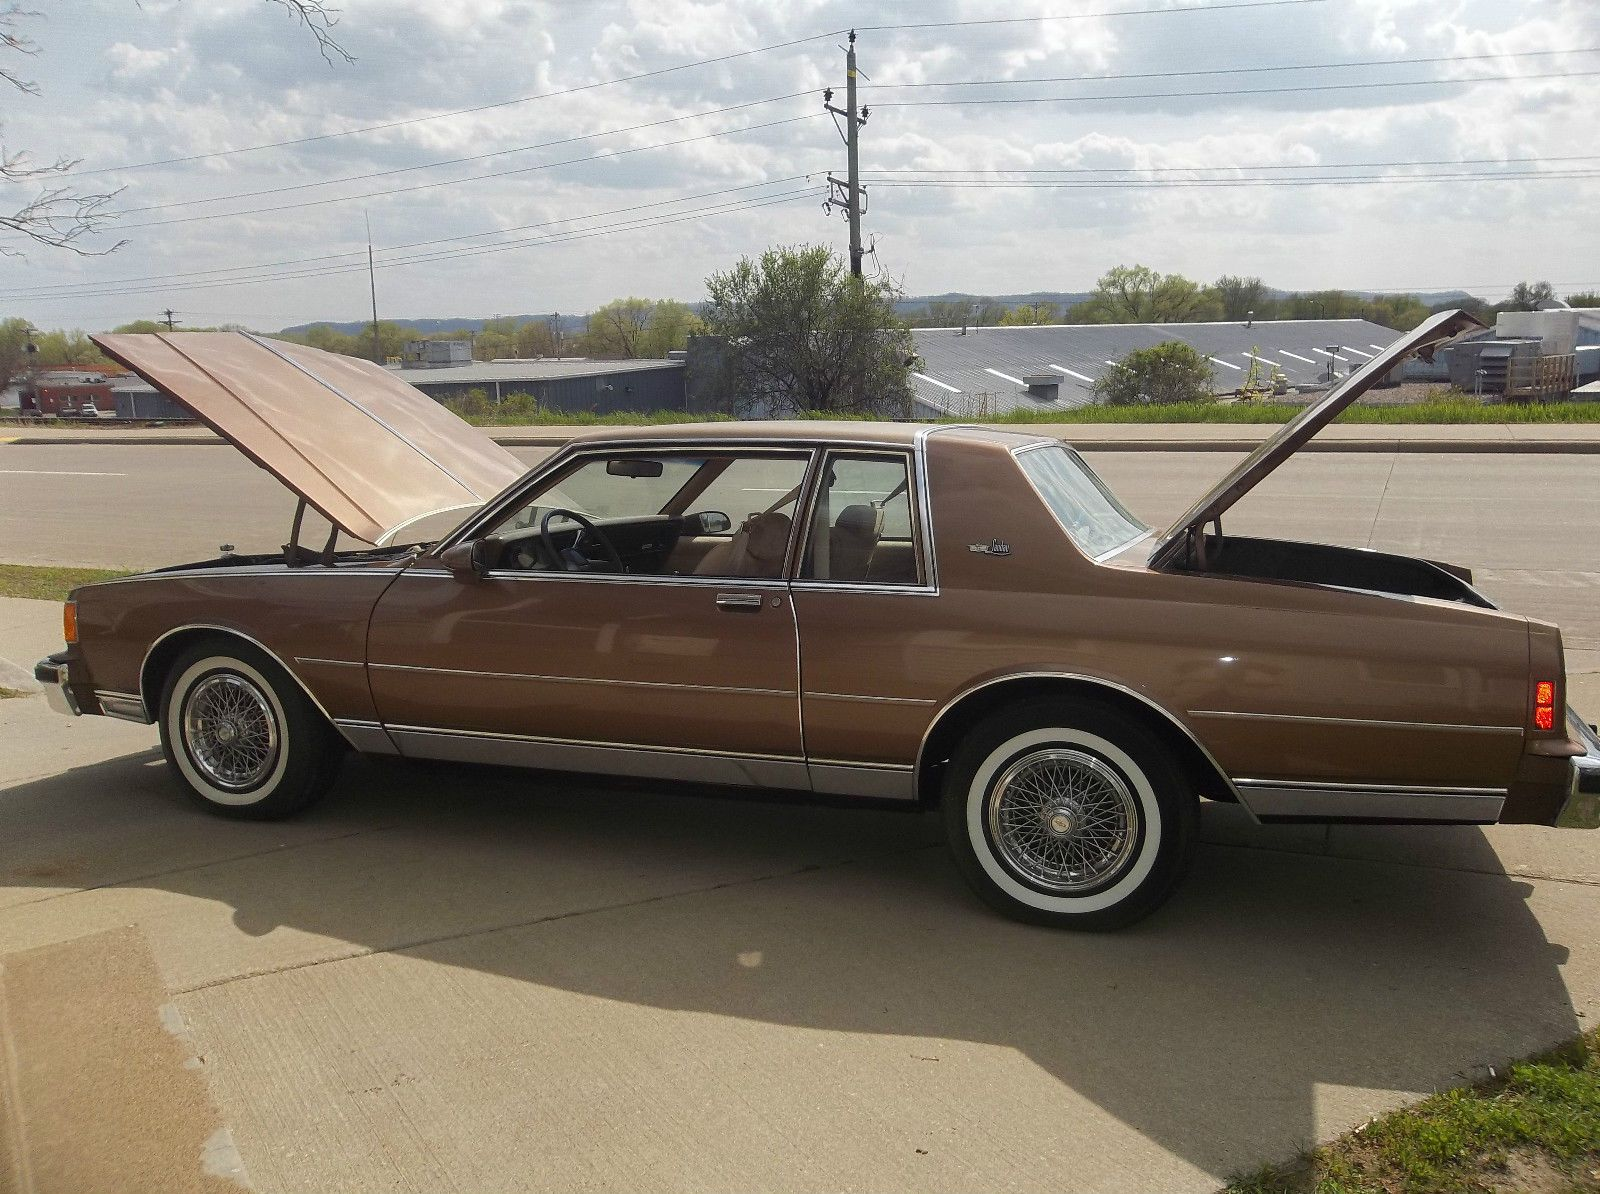 1986 chevrolet caprice 2 door landau sport coupe in dark chestnut 30 000 miles with the demise of the impal chevrolet caprice chevrolet chevy caprice classic 1986 chevrolet caprice 2 door landau